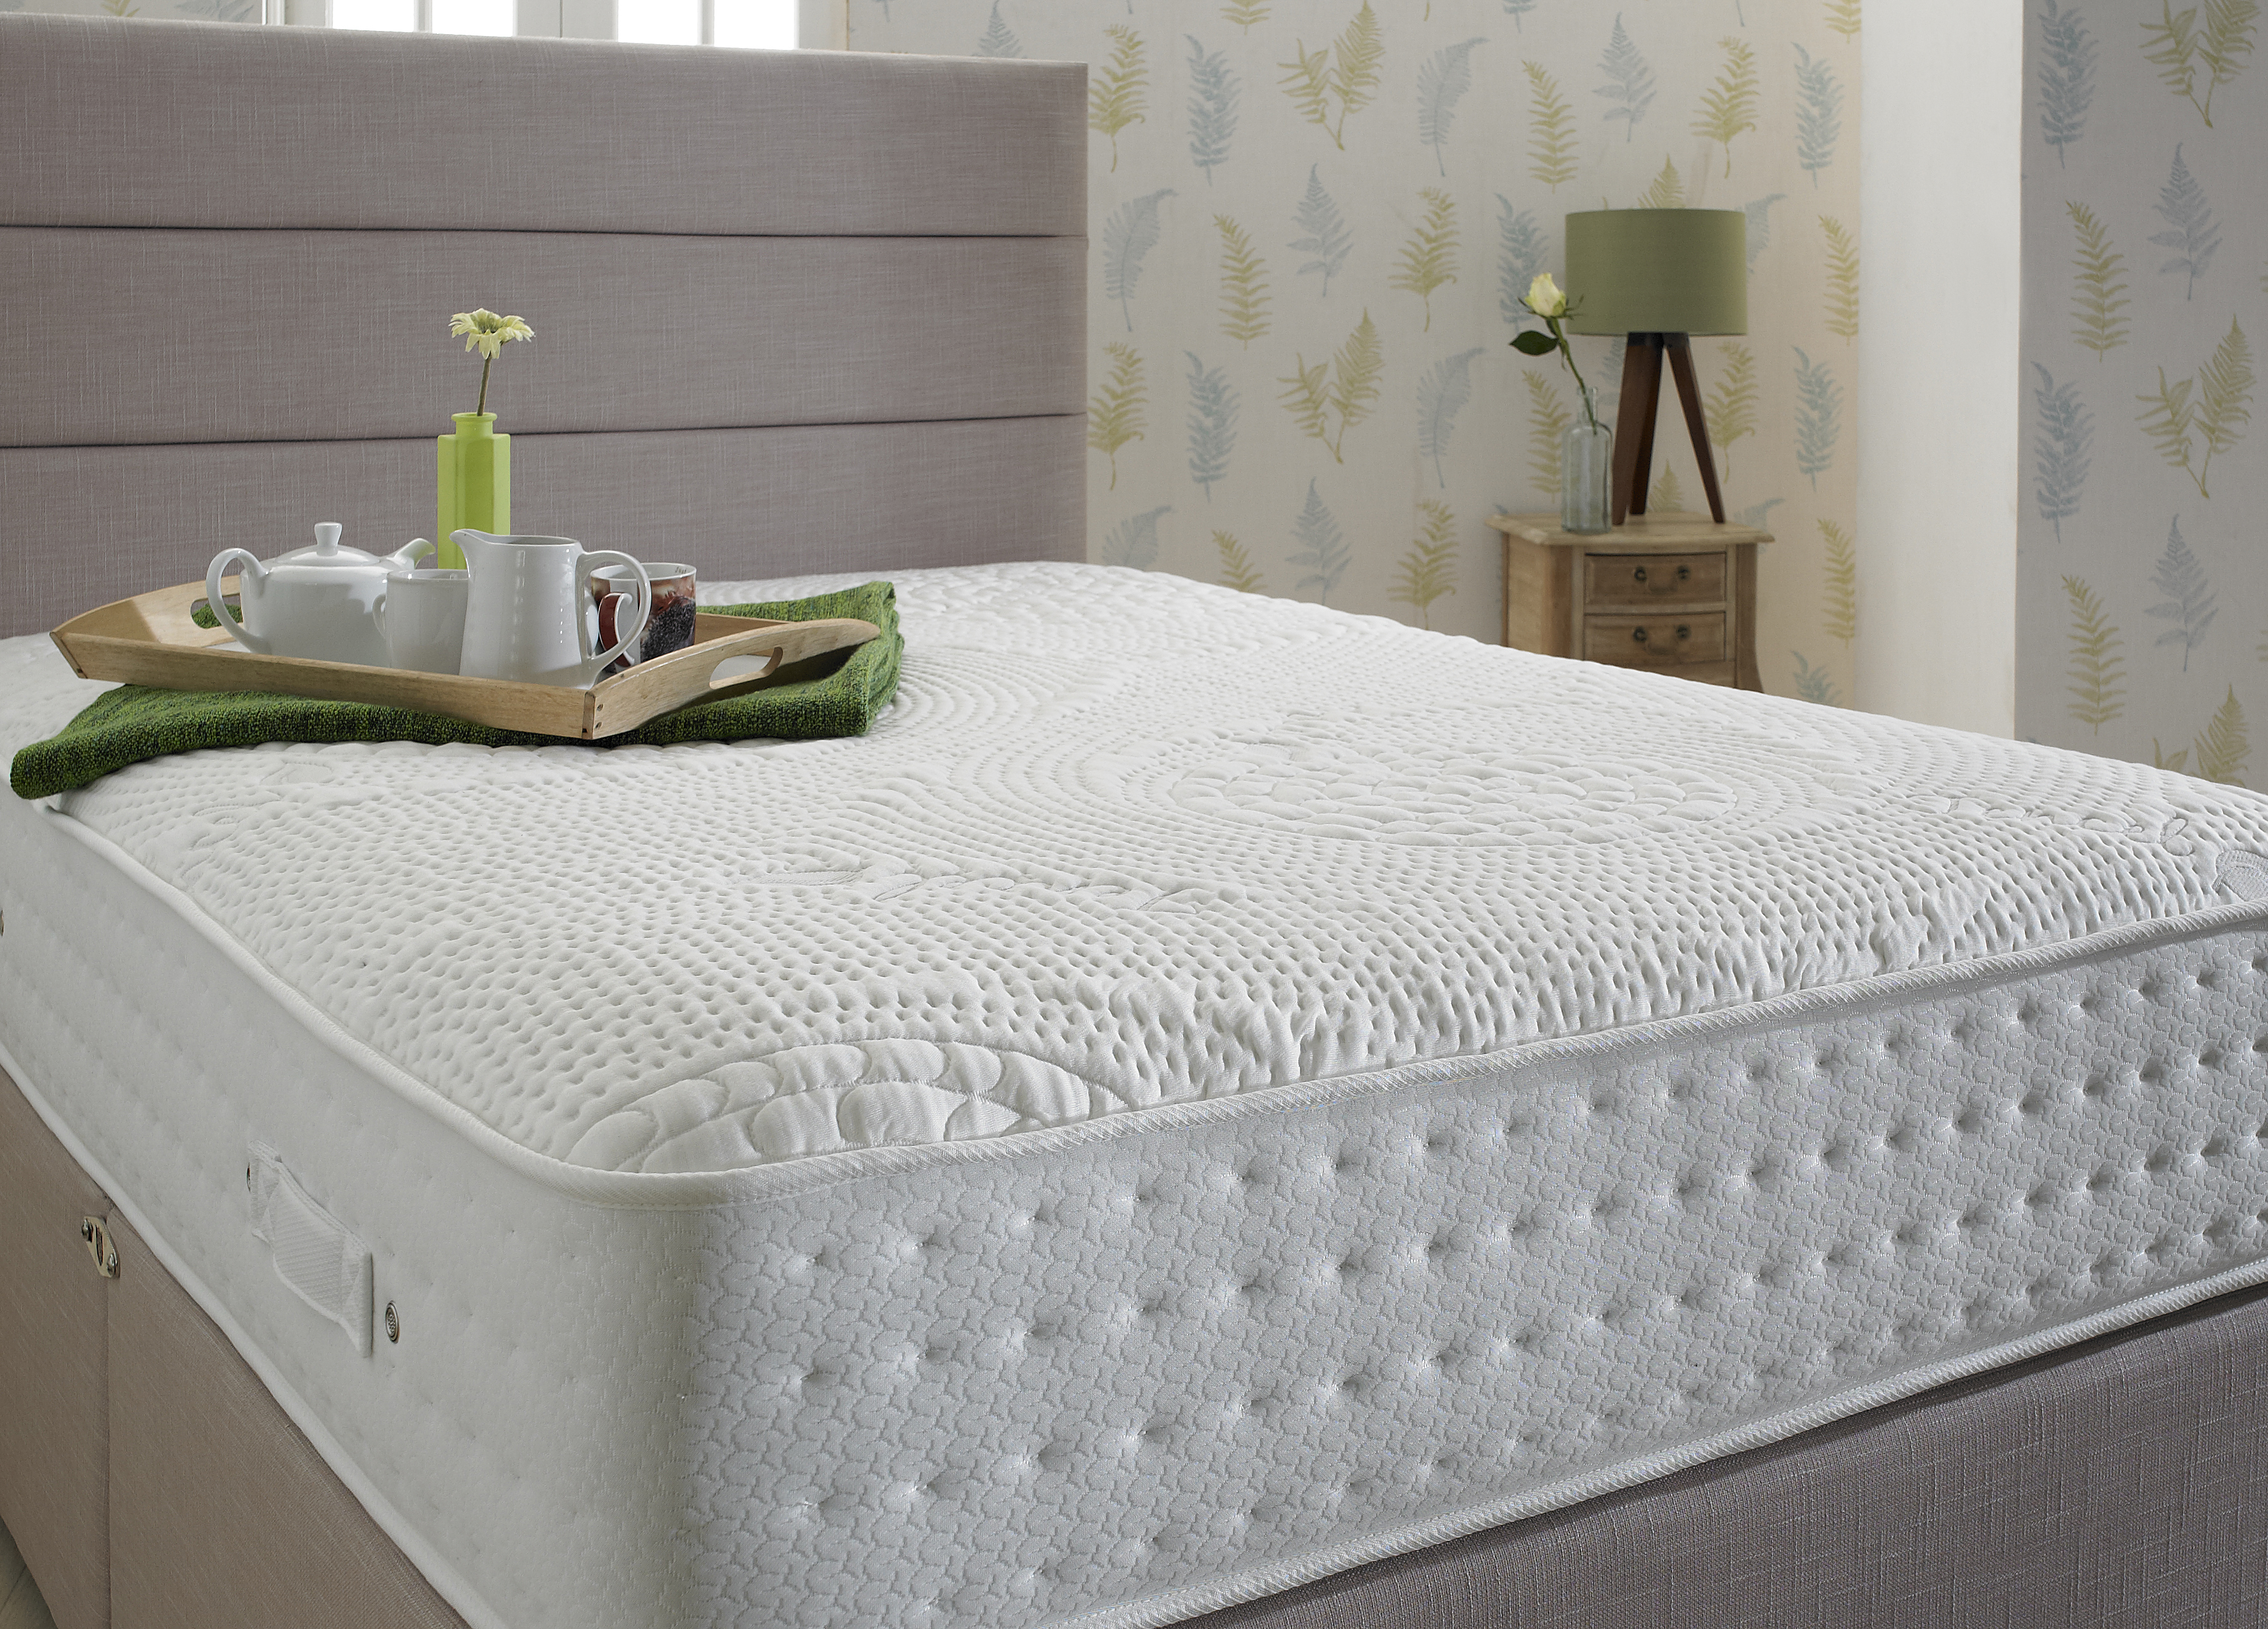 Shire Beds Eco Cosy Anti Bug 3000 Pocket Sprung Mattress from £379